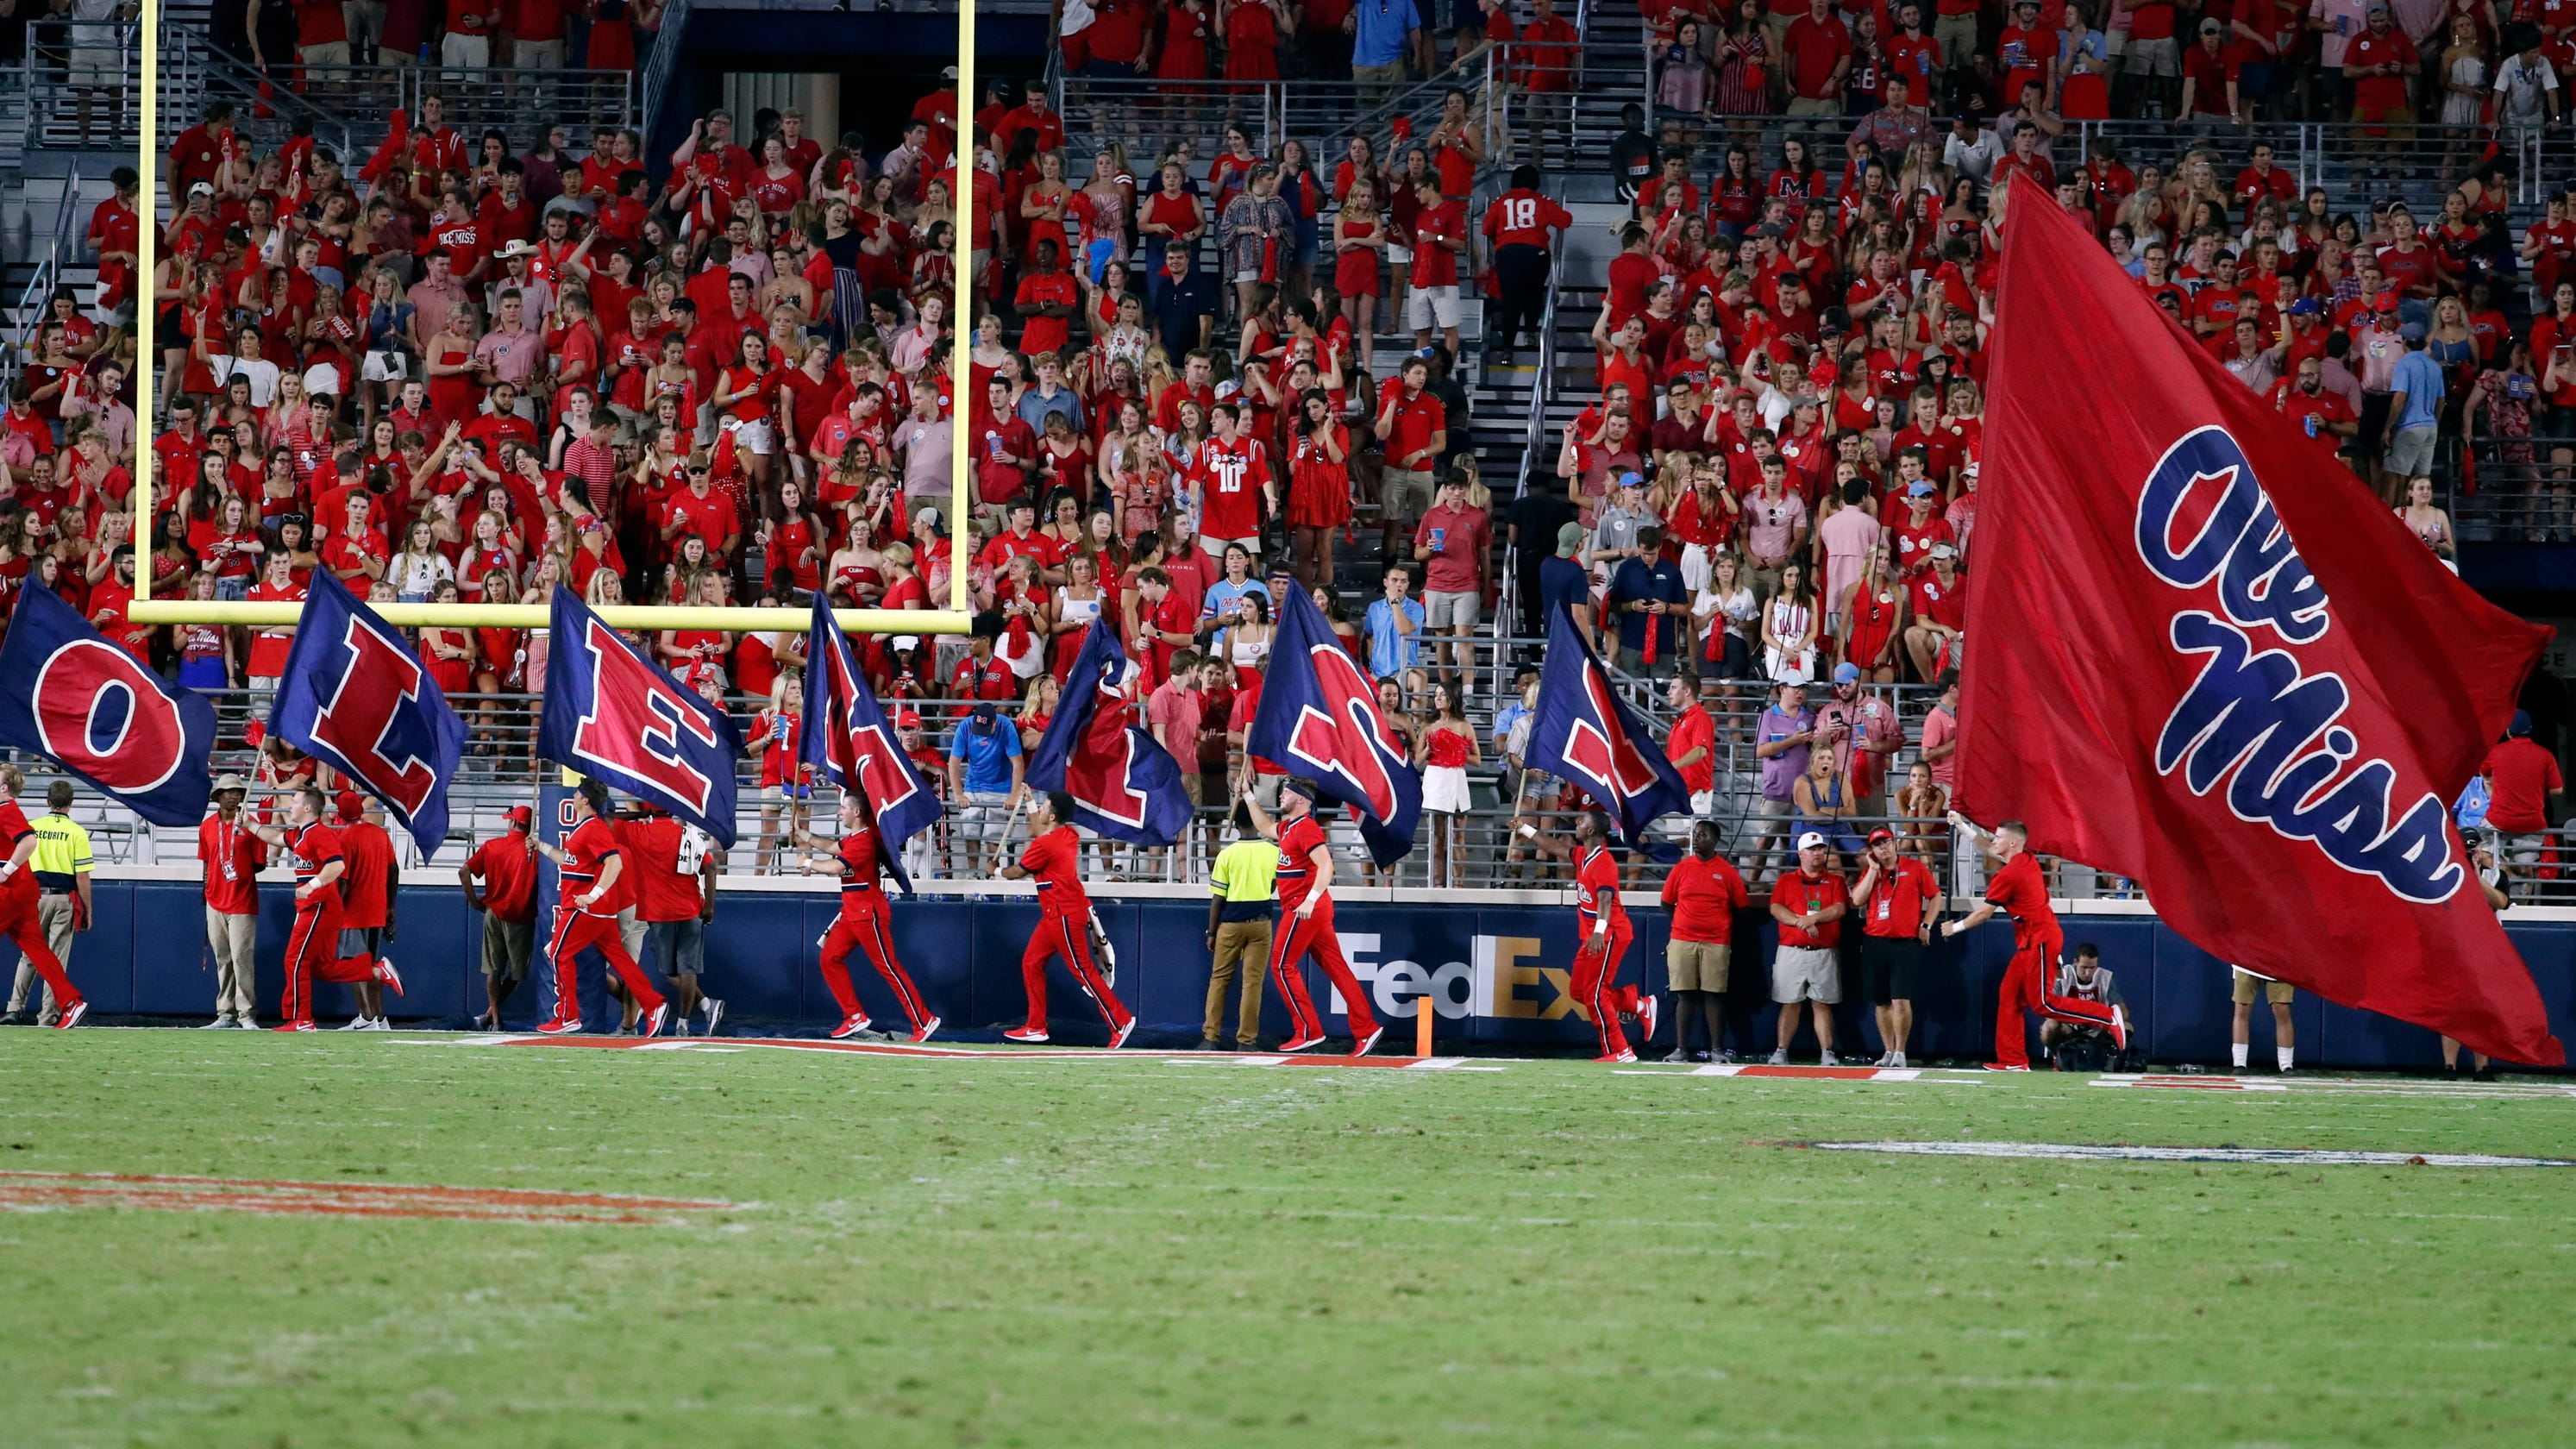 Ole Miss athletics director search: What do supporters want in next AD?